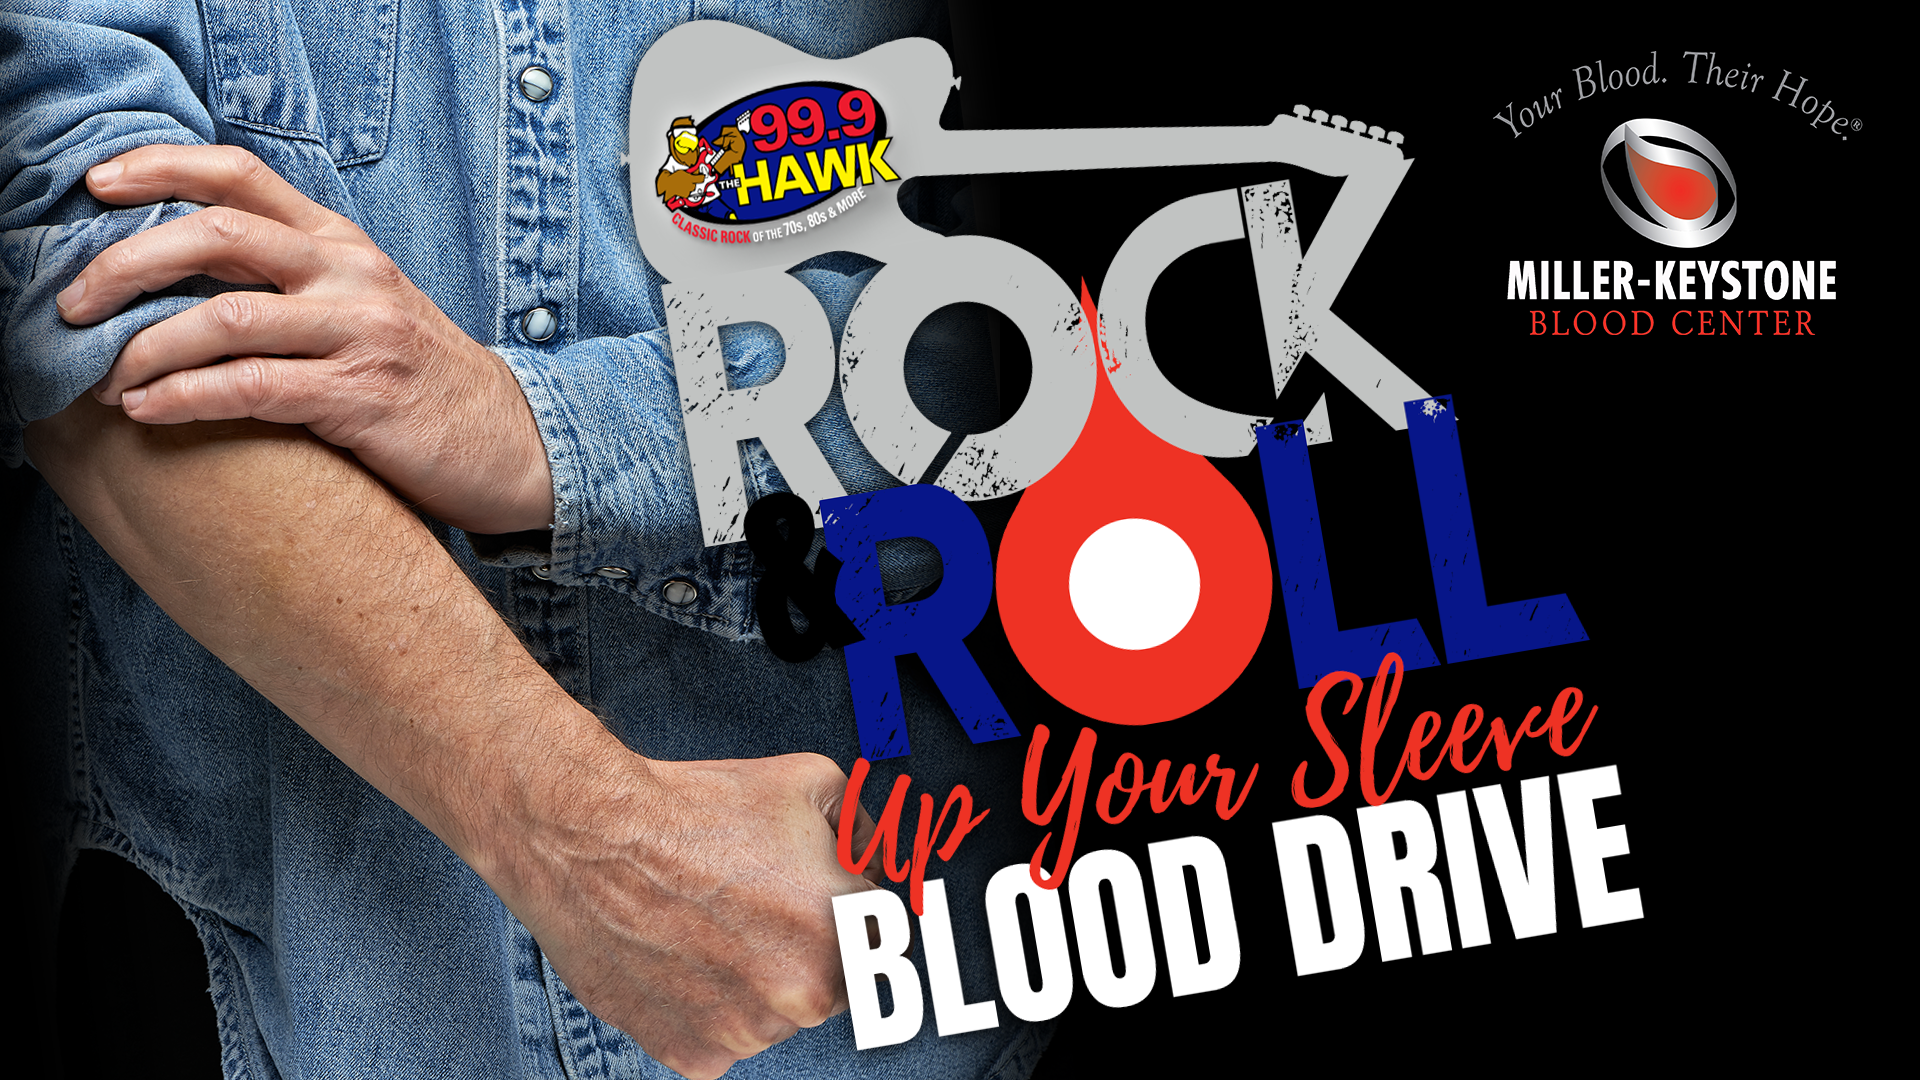 Rock & Roll Up Your Sleeve Blood Drive